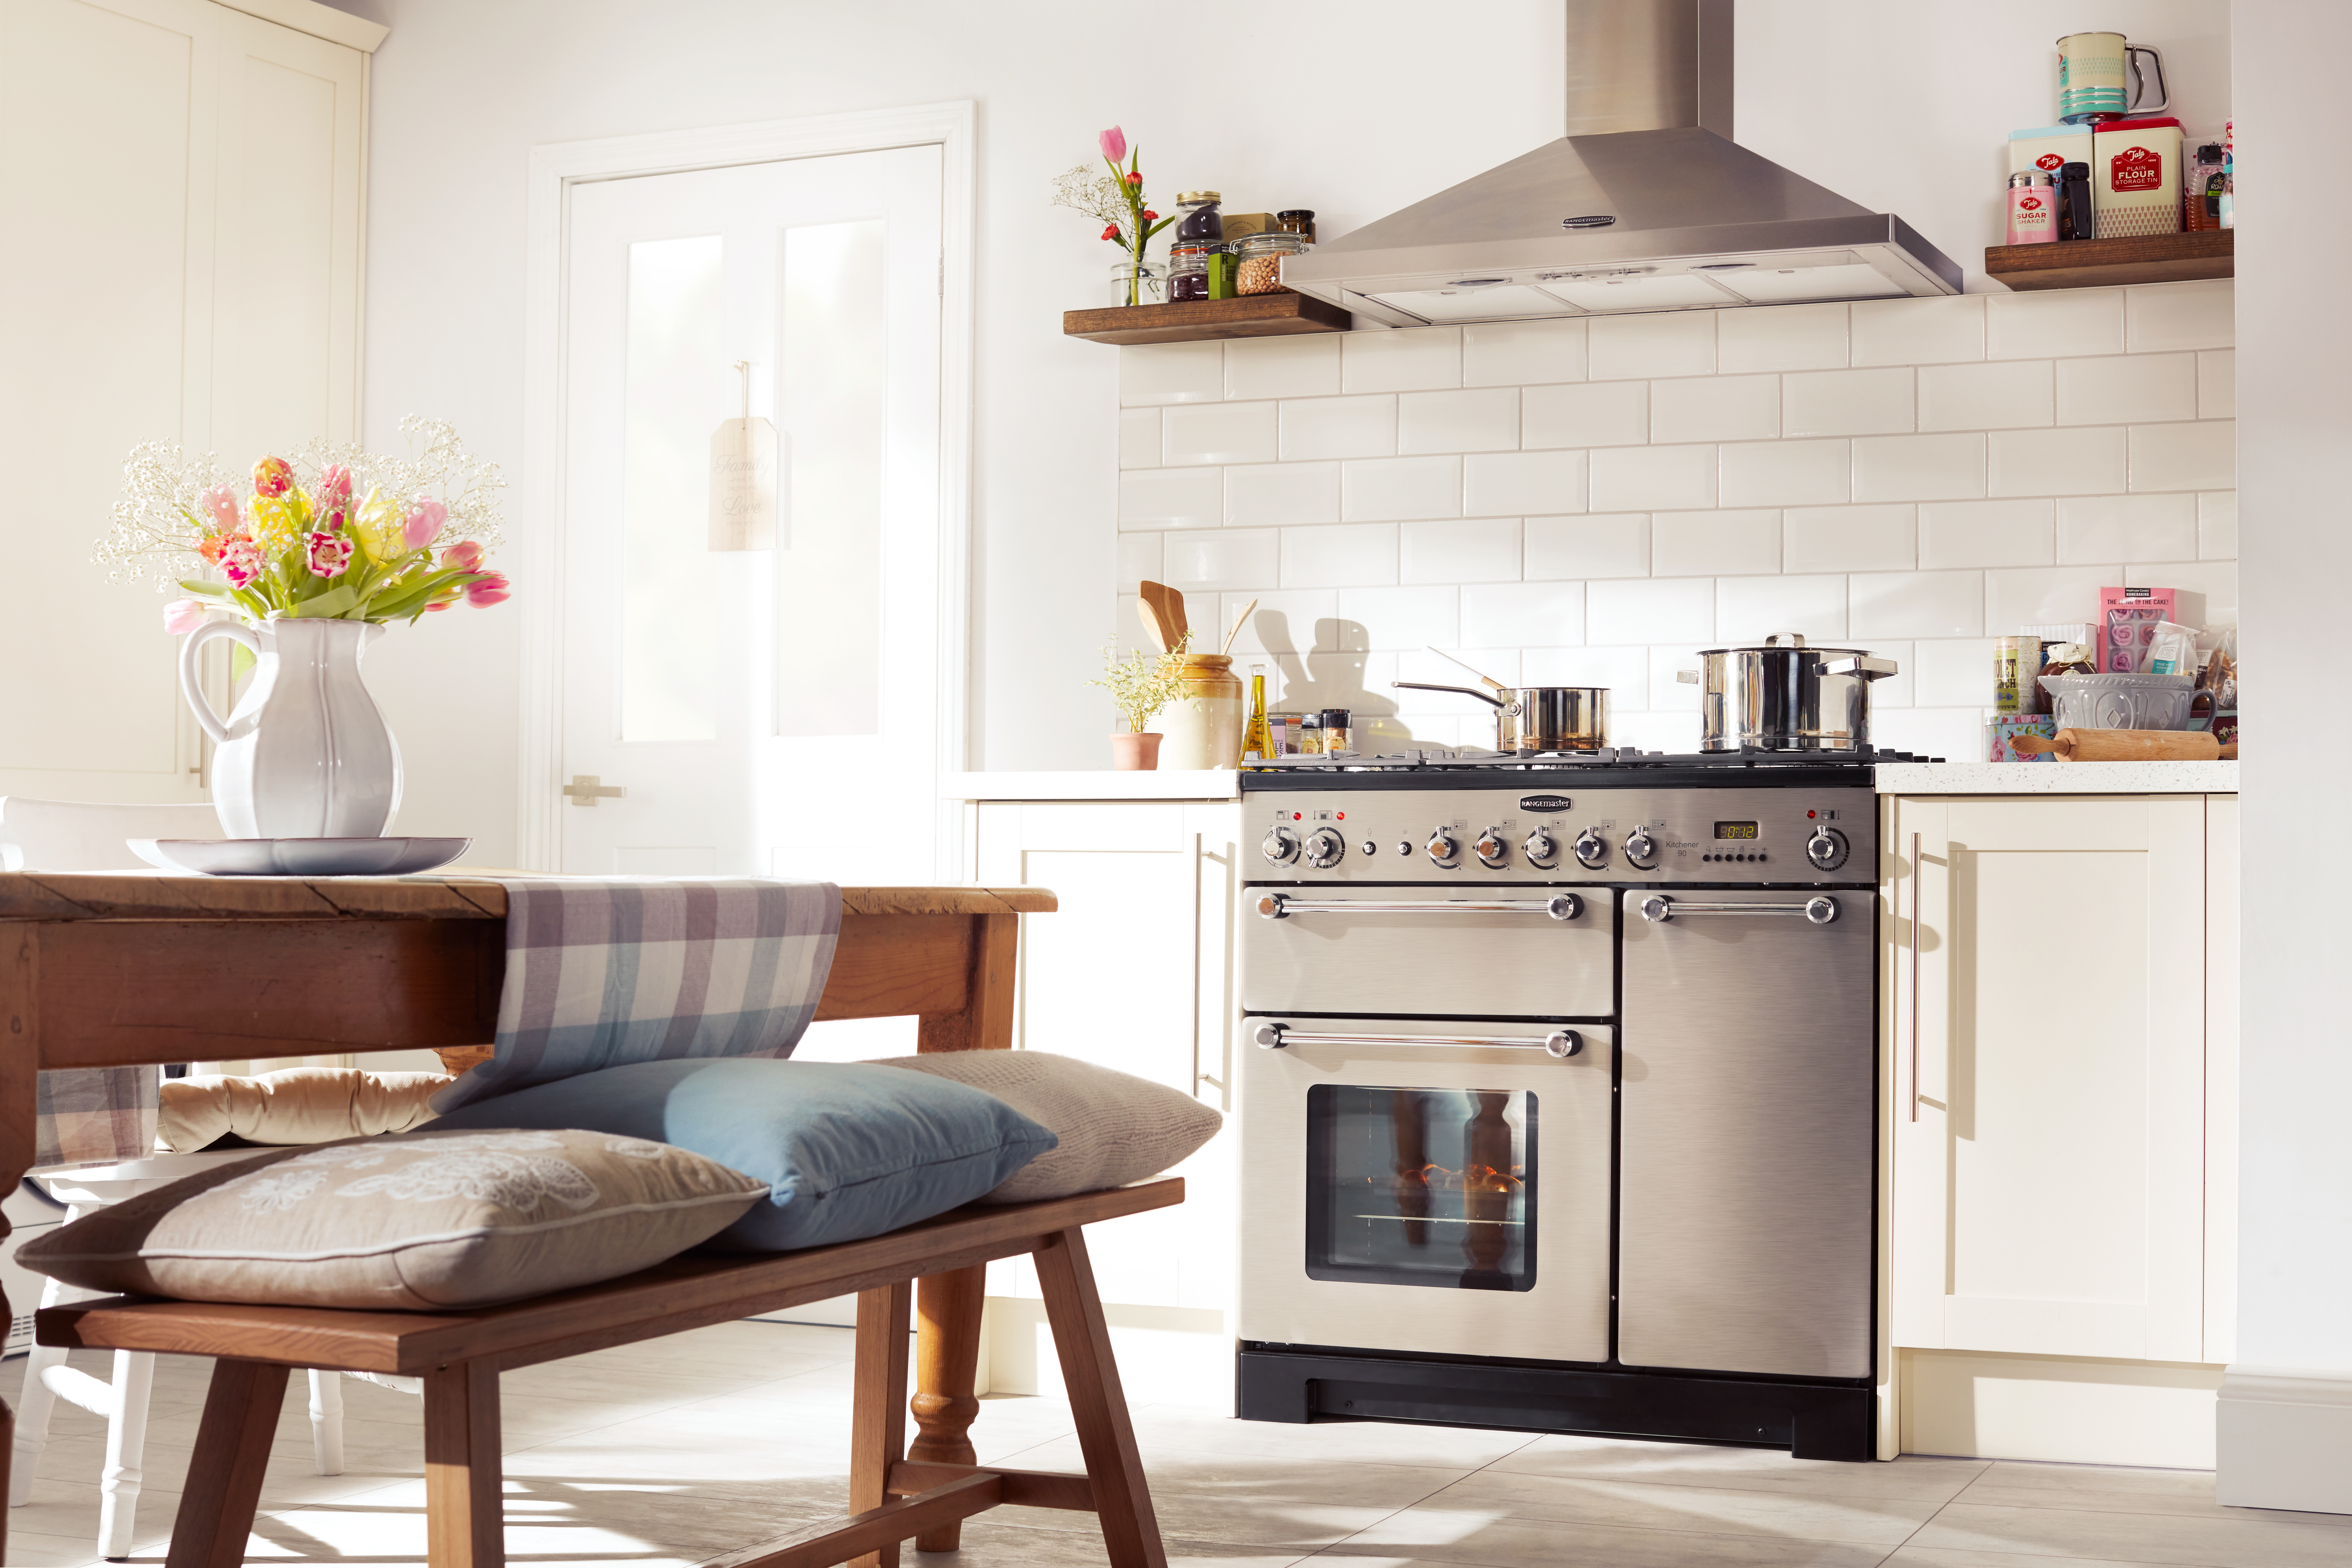 Looking For A New Oven But Not Sure Whatu0027s Best For You And Your Kitchen?  Whether Youu0027re Fitting Out Your First Home Or Revamping Your Kitchen, We  Can Helpu2026